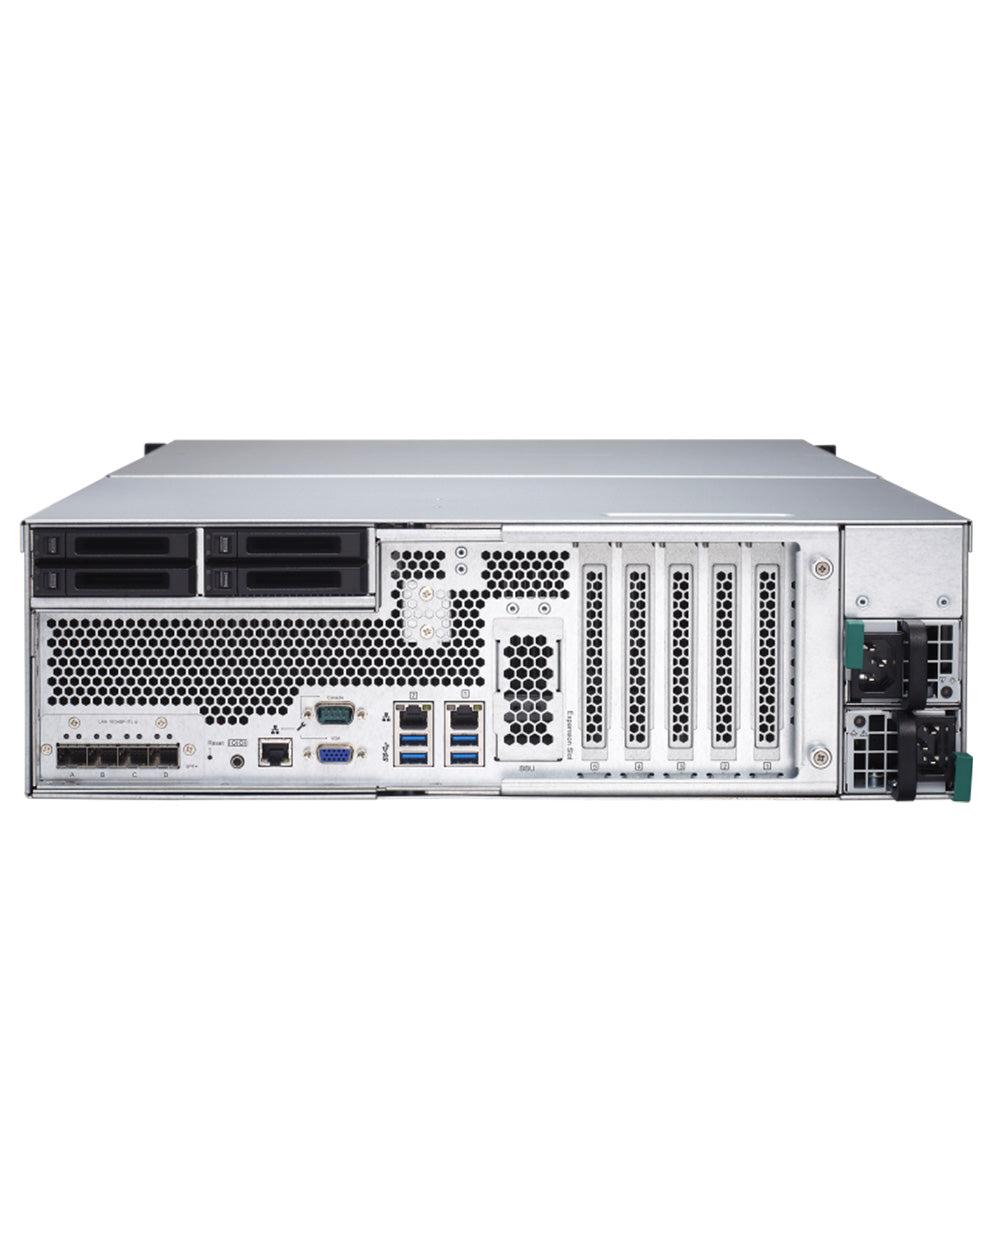 QNAP TDS-16489U-SE1-R2 Diskless 16-Bay Rackmount NAS only $8999.00 from QNAP Direct